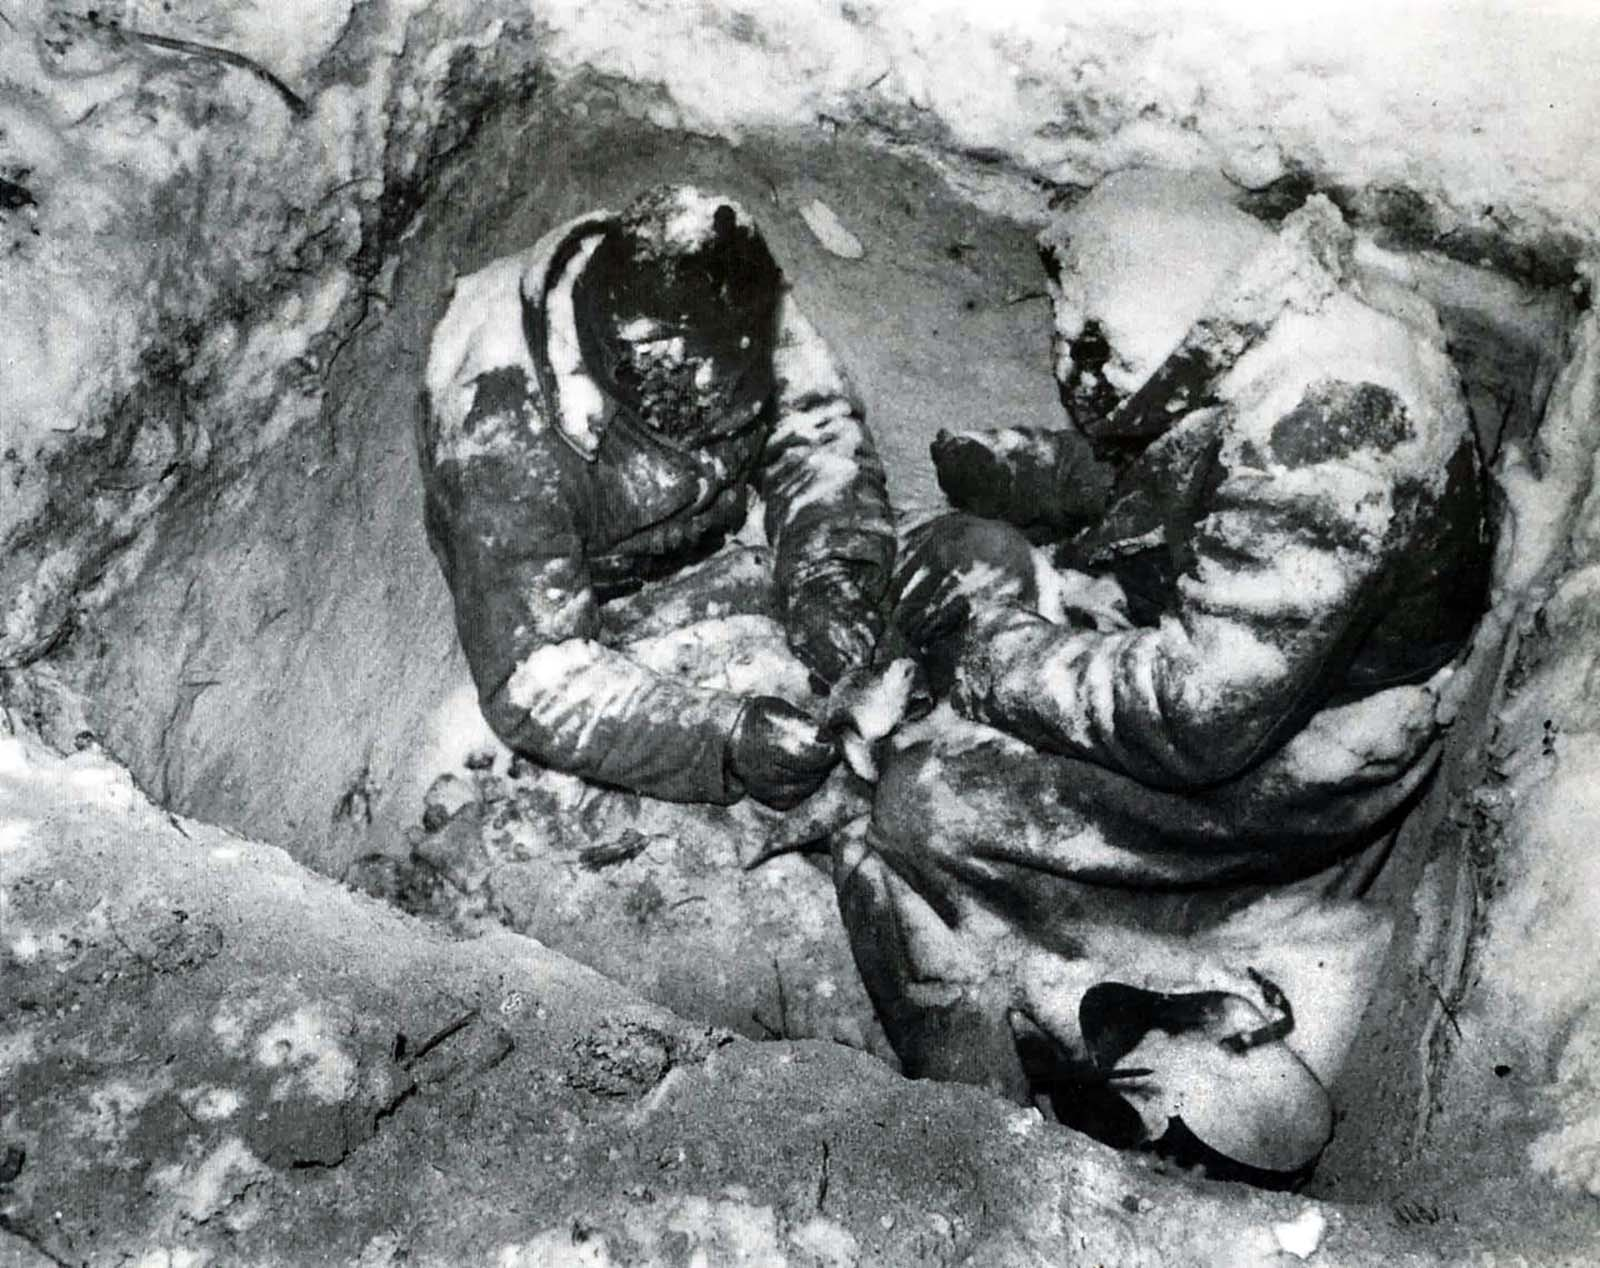 Winter War, Finland, 1940.